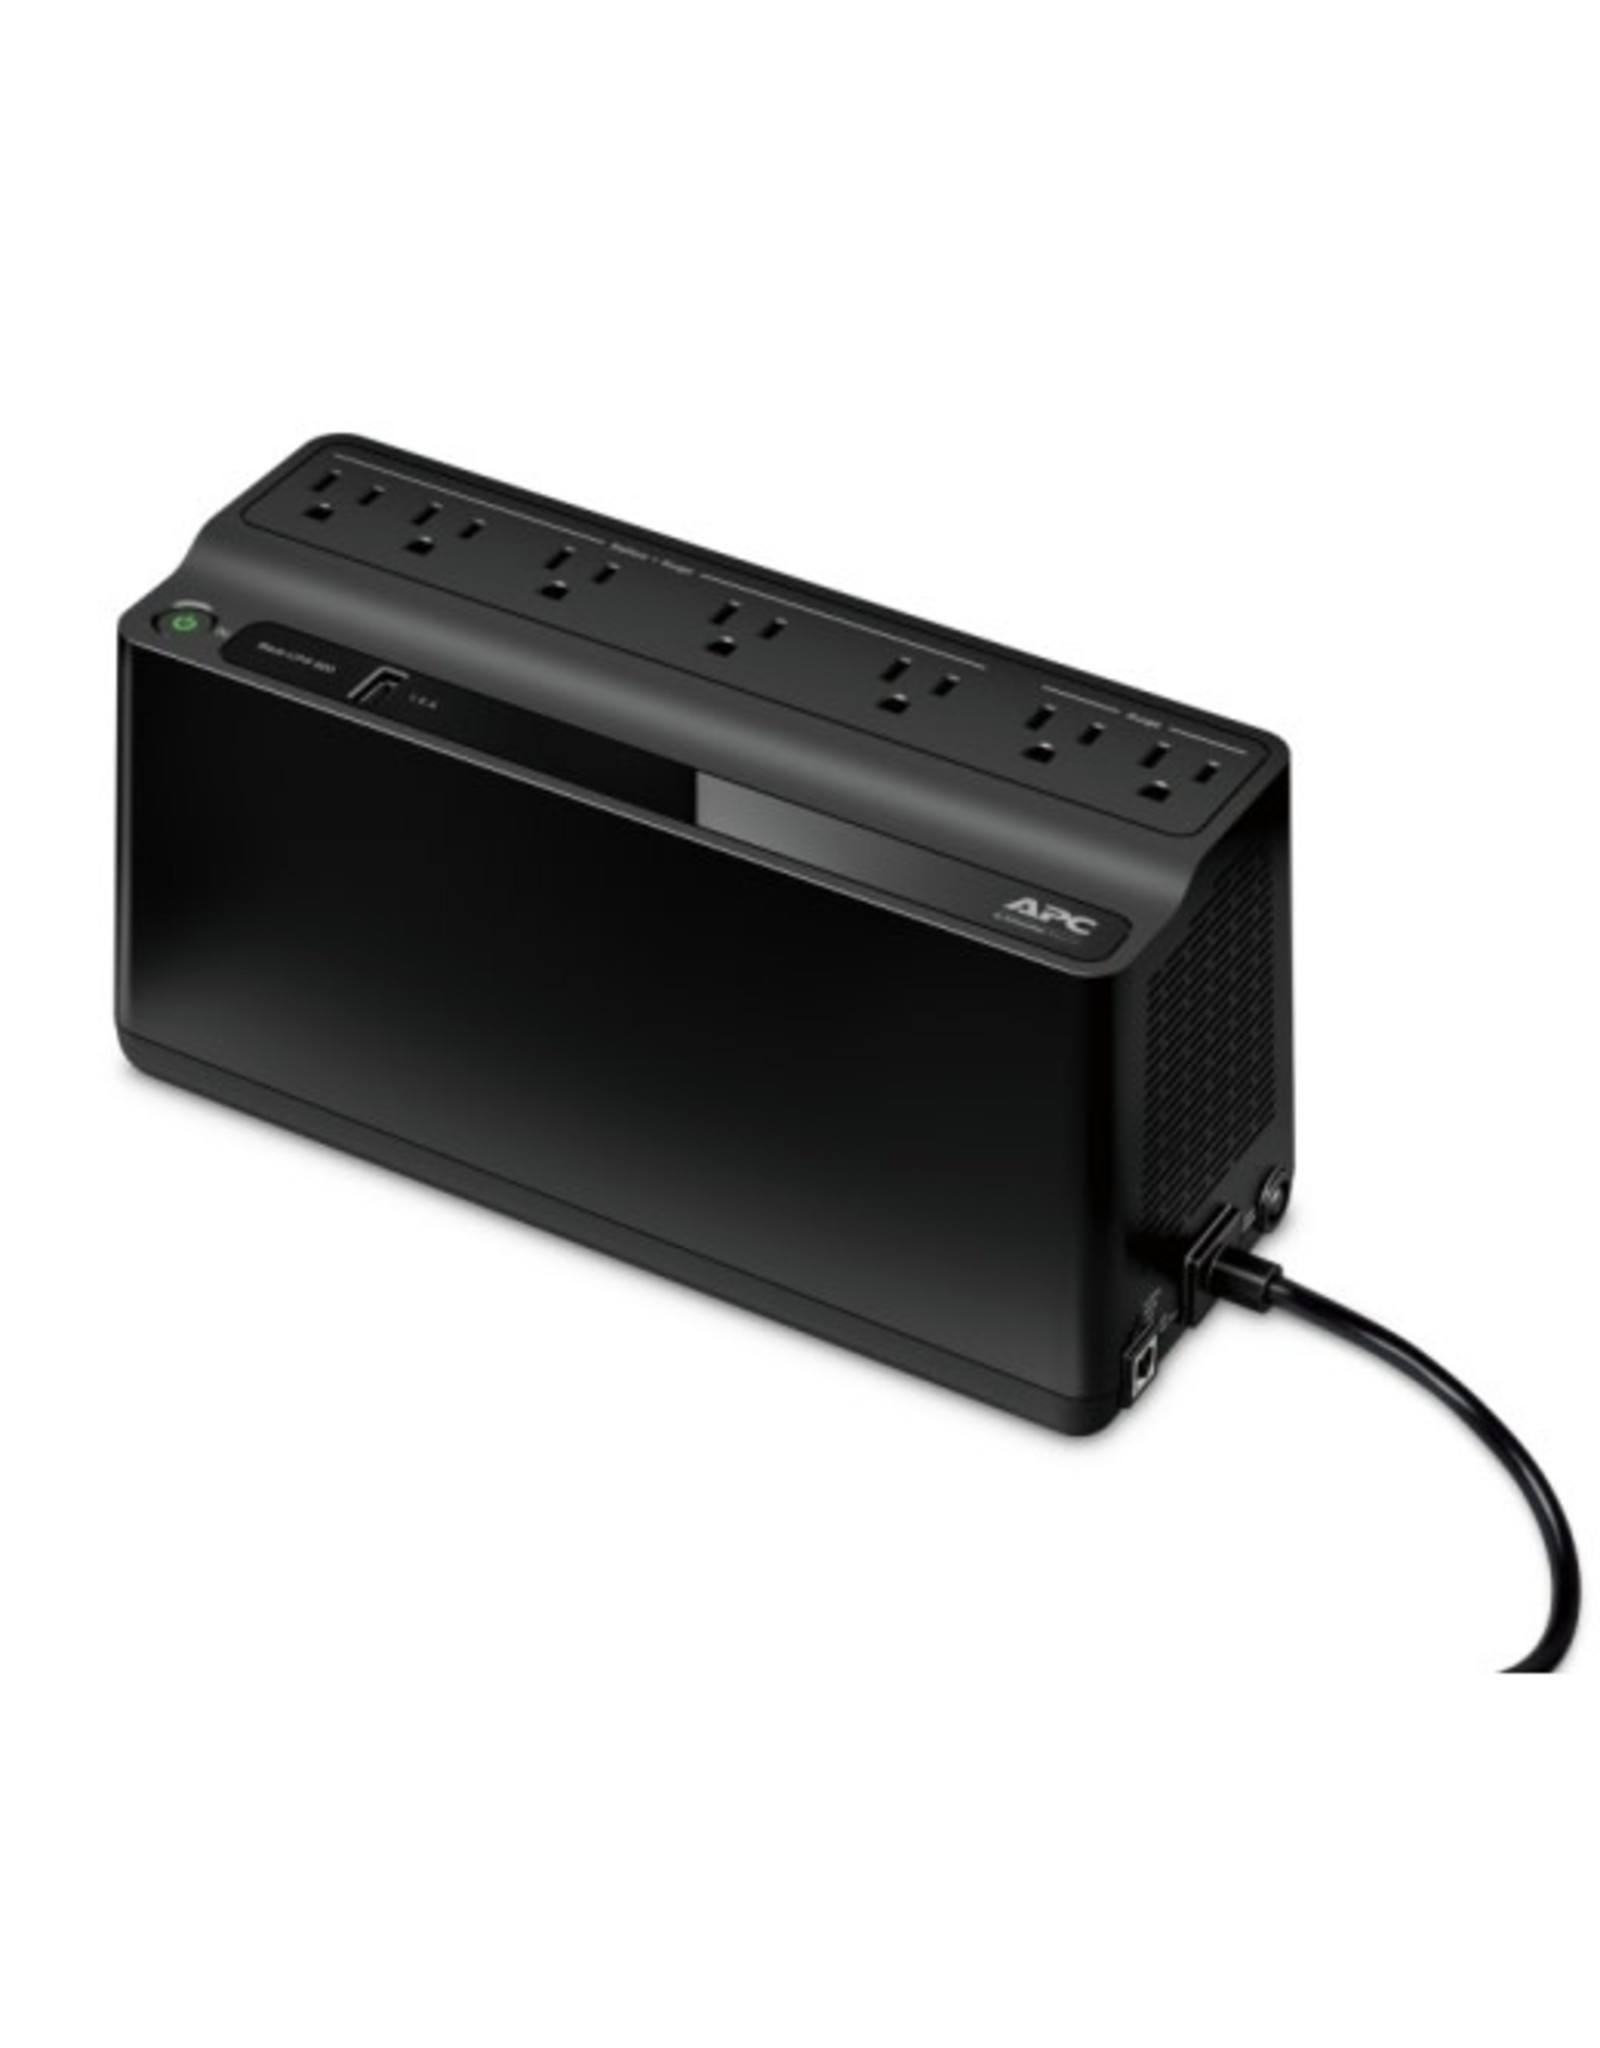 APC APC Back-UPS ES 600VA 120V 1 USB Charging Port